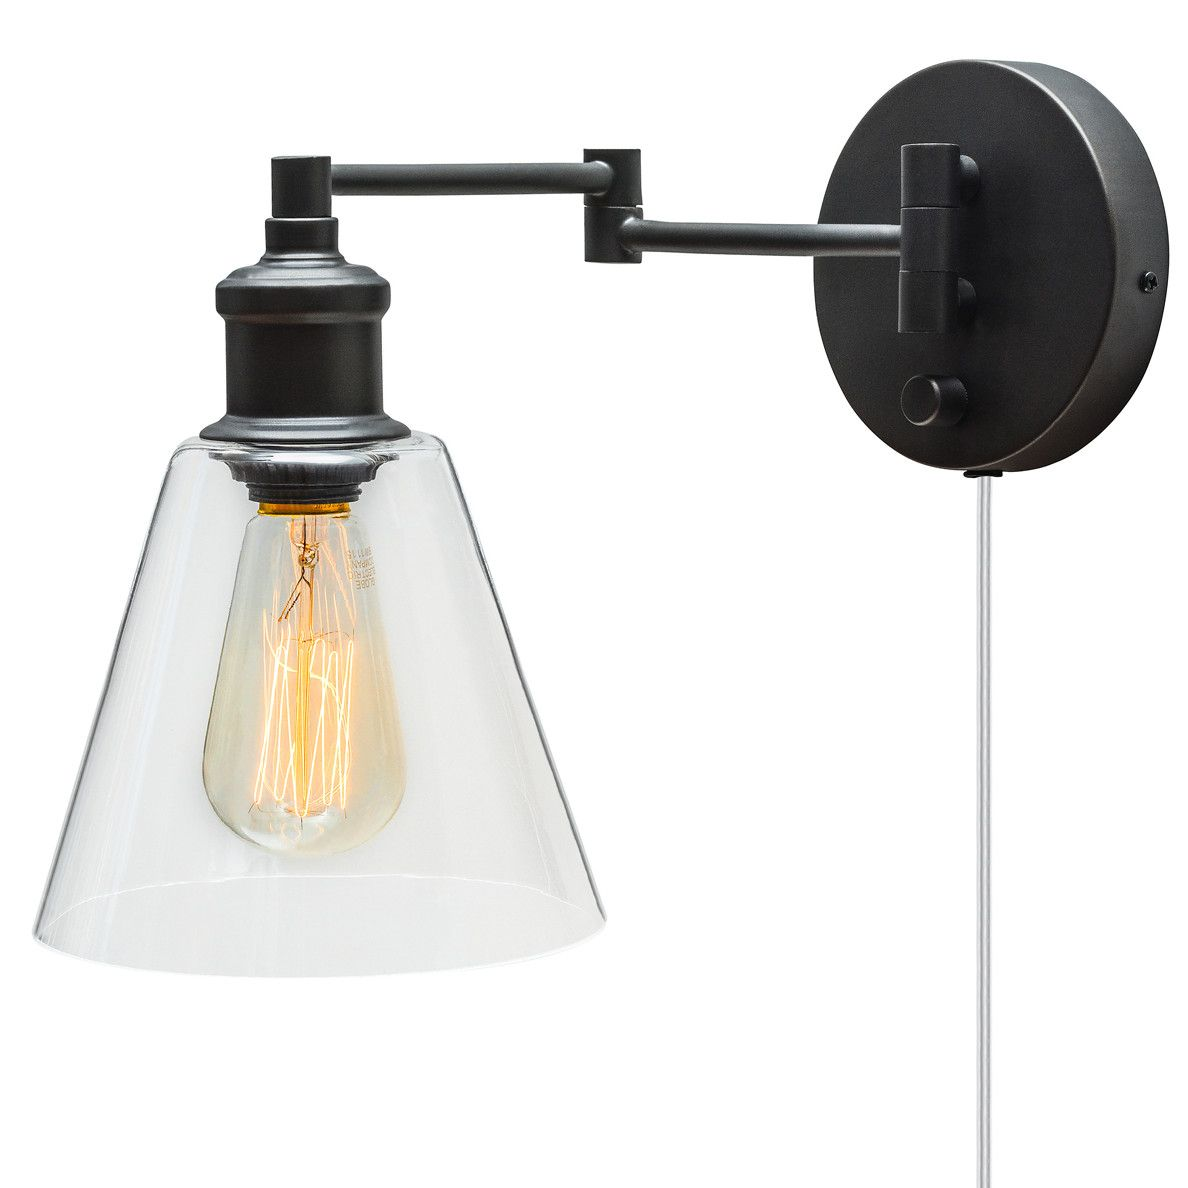 38 Globe Electric Company Adison 1 Light Plug In Industrial Wall Sconce With Hardwire Conver Vintage Wall Sconces Industrial Wall Sconce Swing Arm Wall Sconce